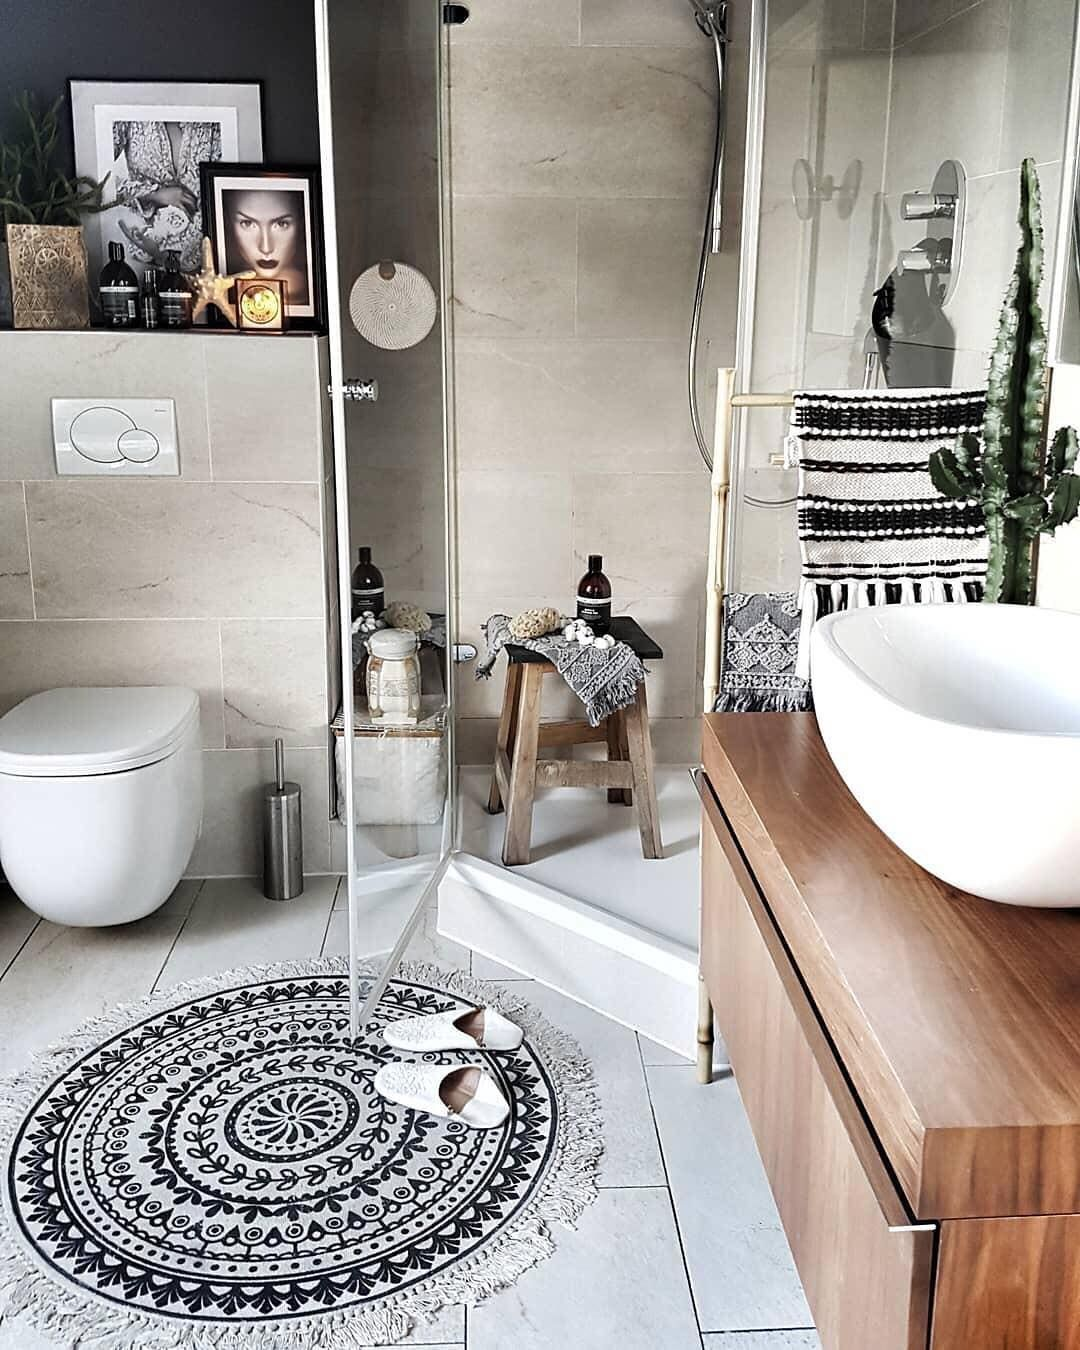 Boho Style Im Badezimmer We Love It Belliwood Boholiving Mywestwingstyle Westwing Inspirationeveryday In 2020 Boho Badezimmer Badezimmer Badvorleger